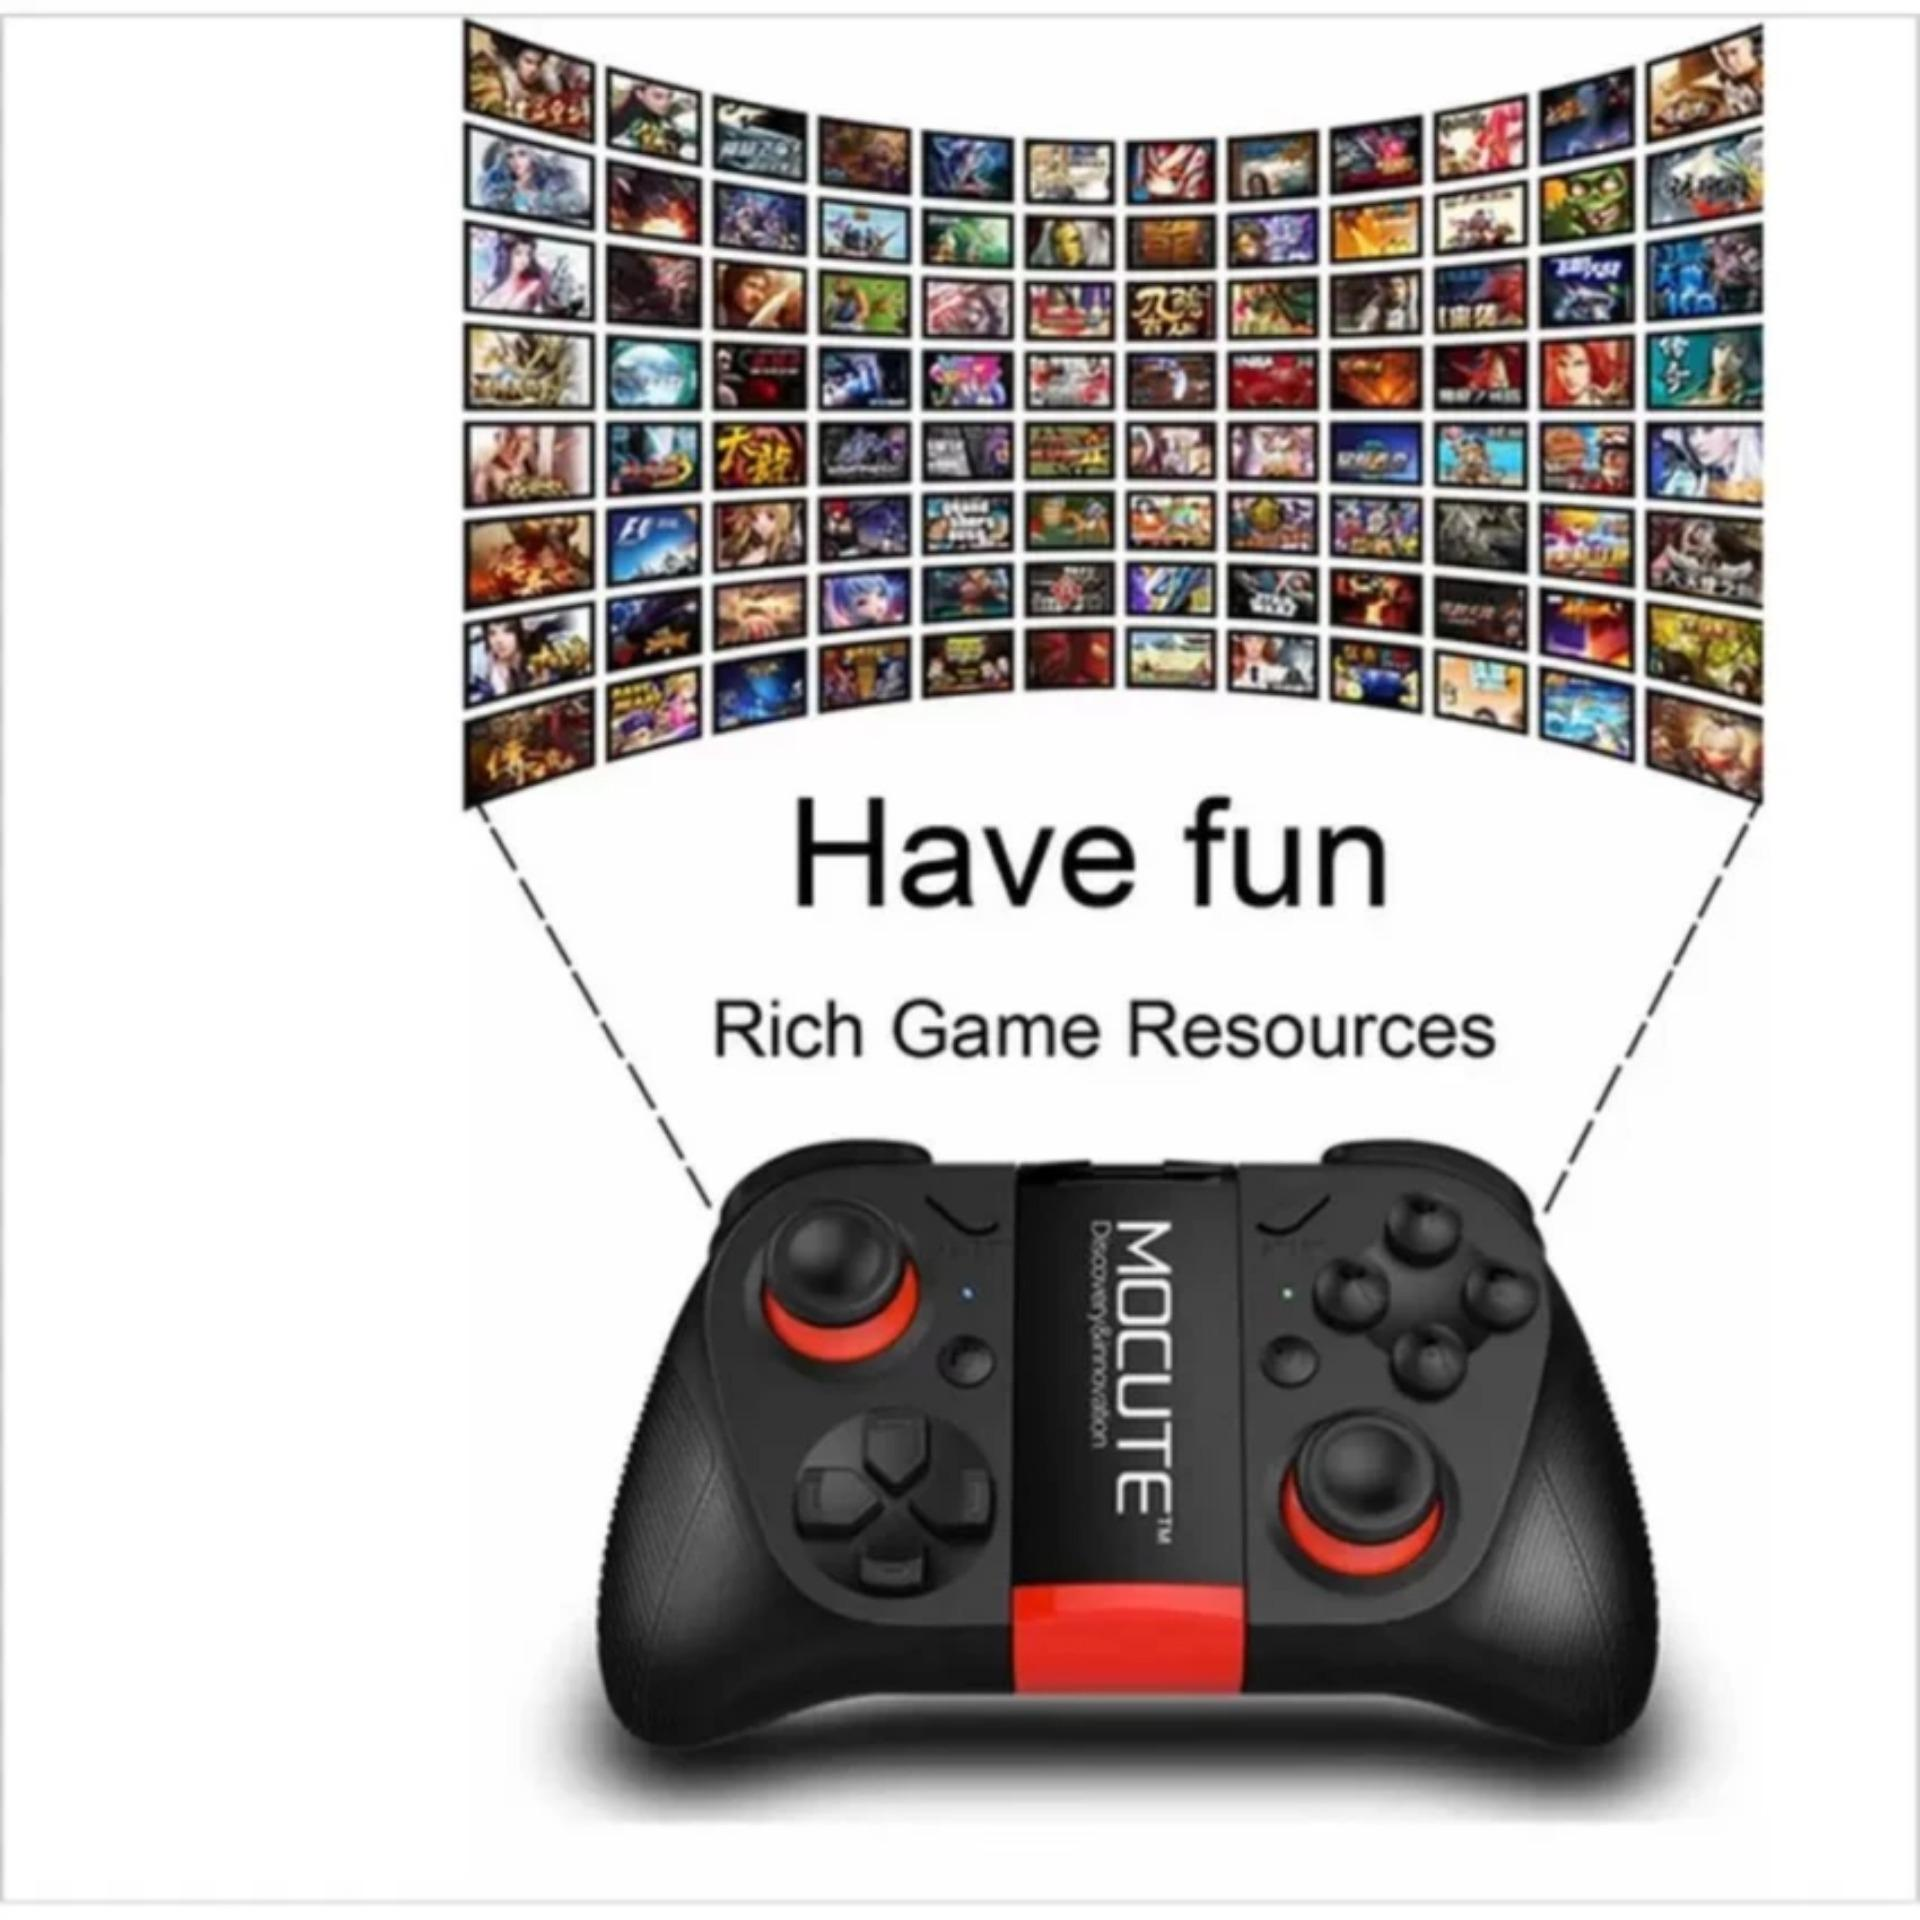 Eshop Checker Mocute 050 Wireless Gamepad Bluetooth 30 Game Terios T3 Holder Jp Android Smartphone Vr Box Tv Controller Joystick For Iphone And Phone Tablet Pc